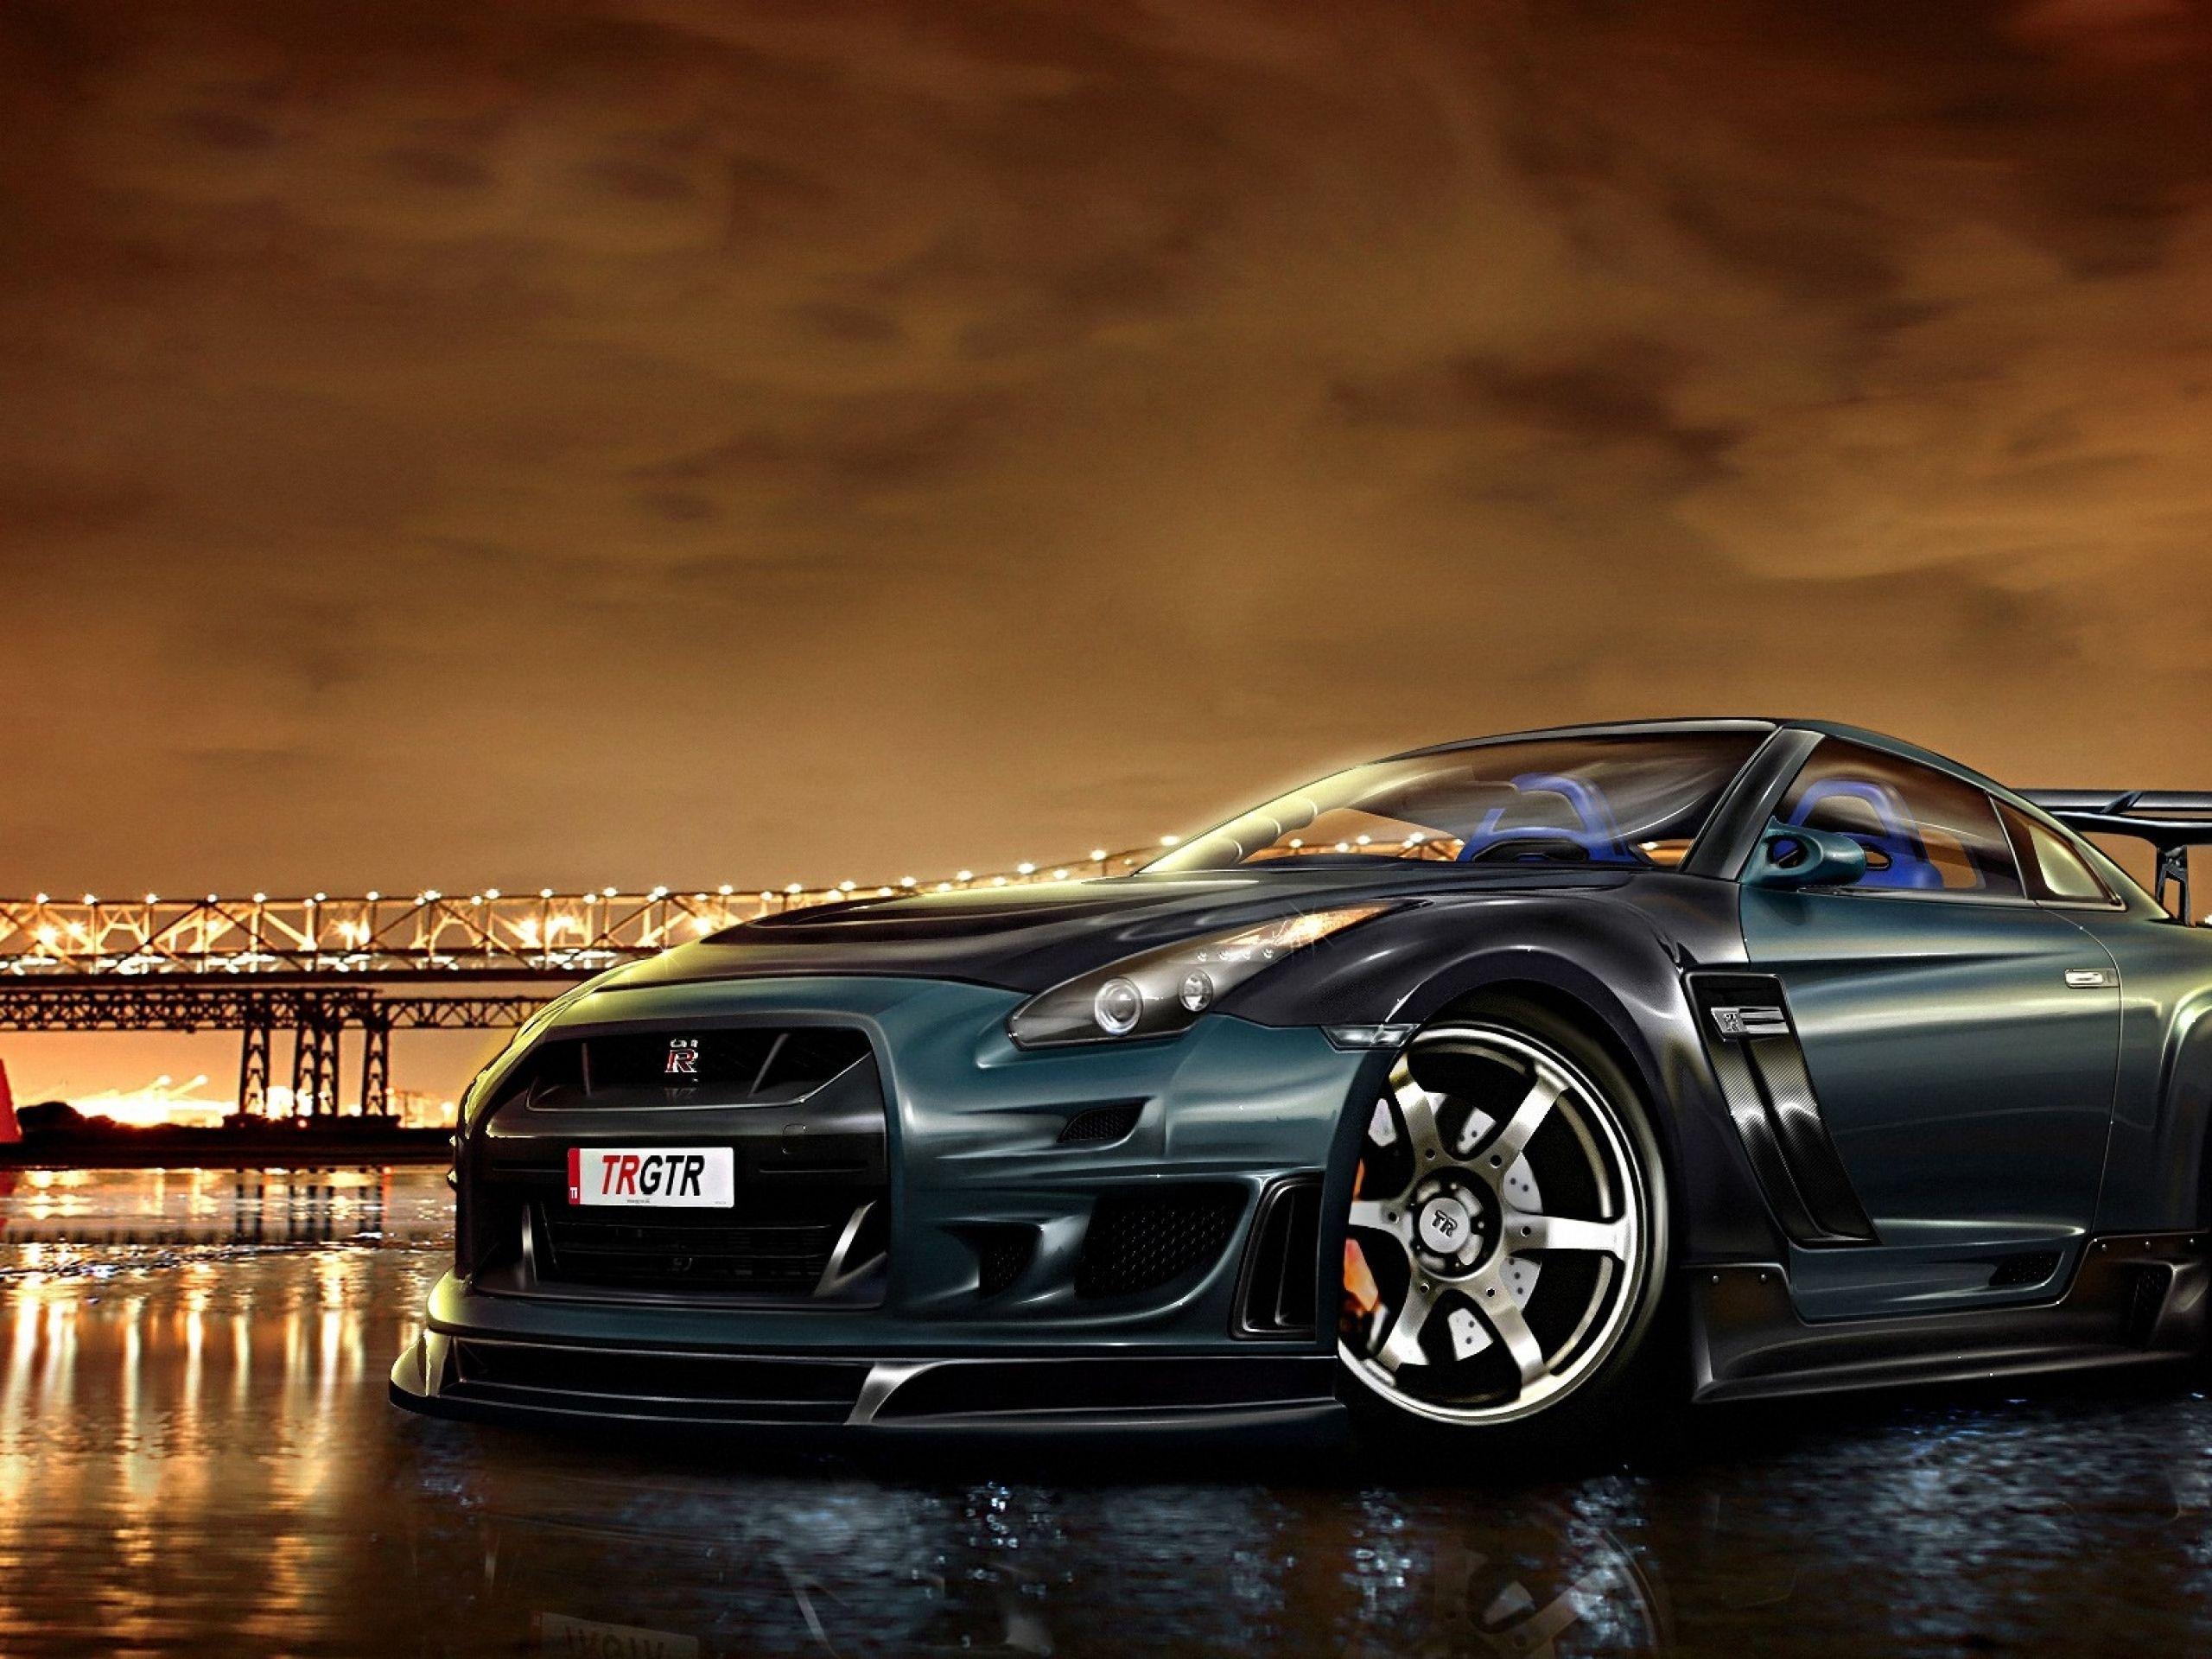 Gtr Sports Car Wallpapers Top Free Gtr Sports Car